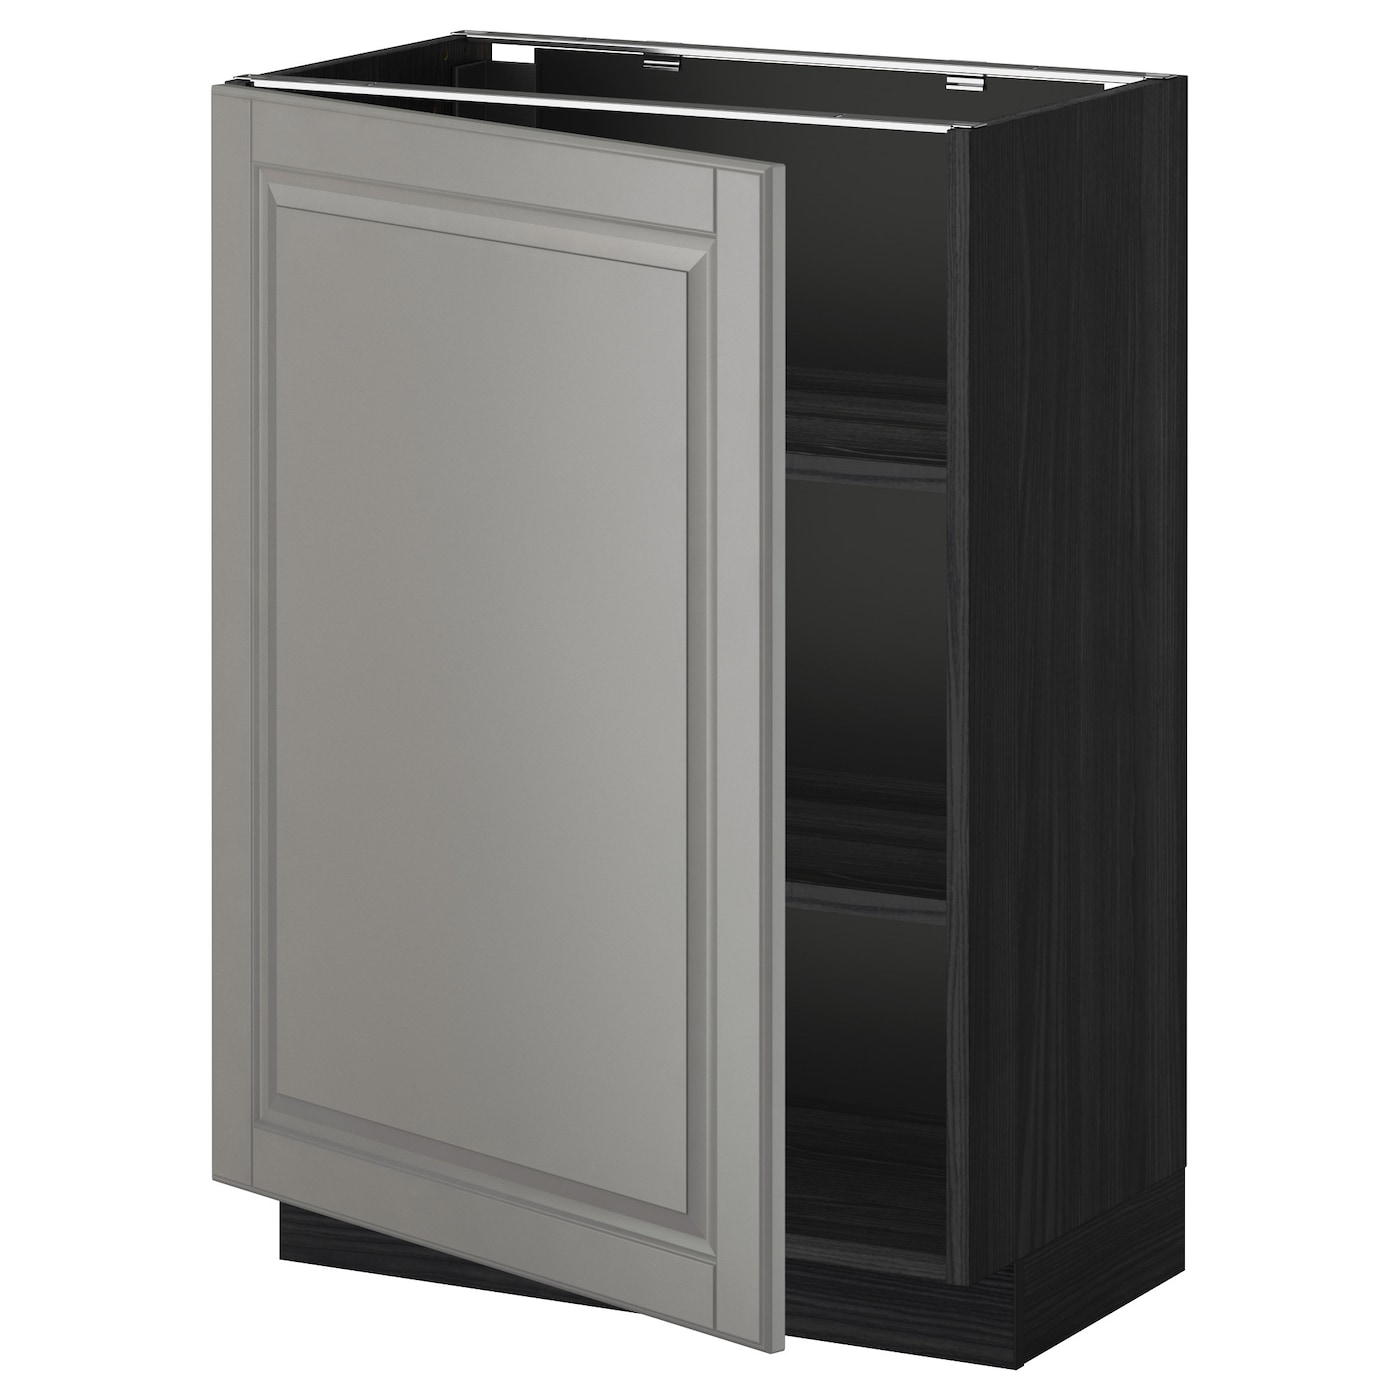 Metod base cabinet with shelves black bodbyn grey 60x37 cm for Black kitchen base cabinets